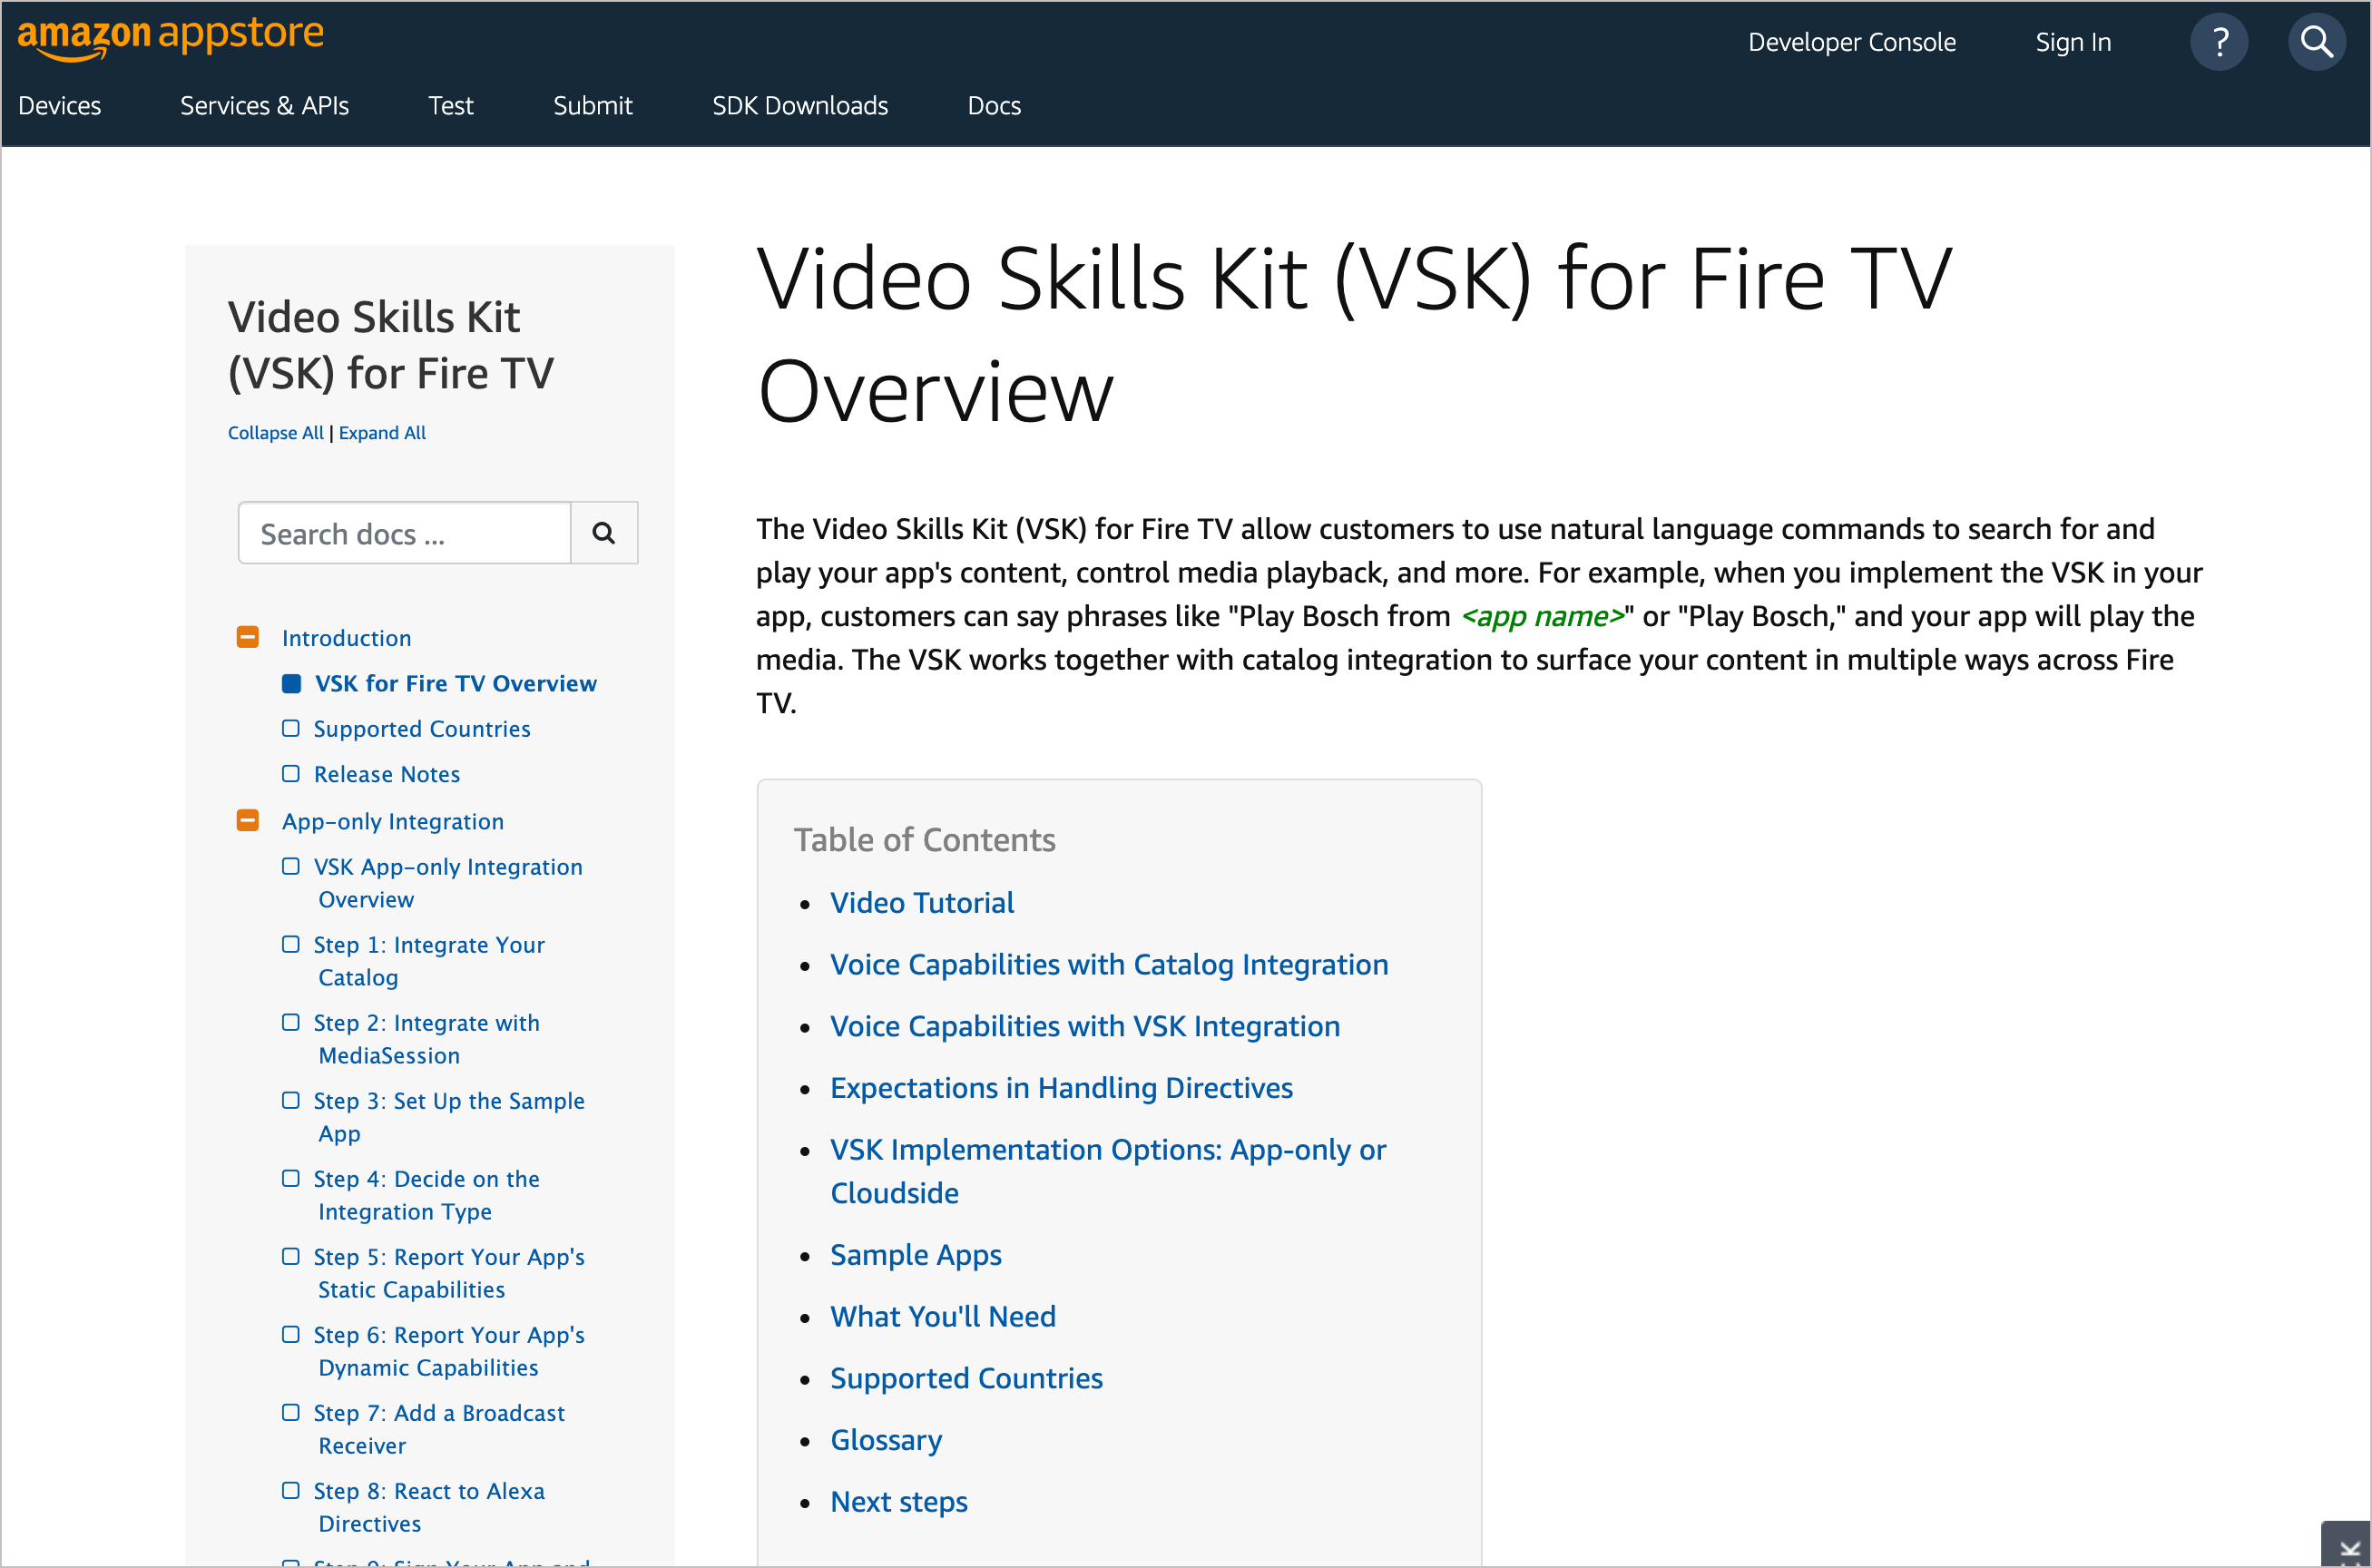 VSK for Fire TV